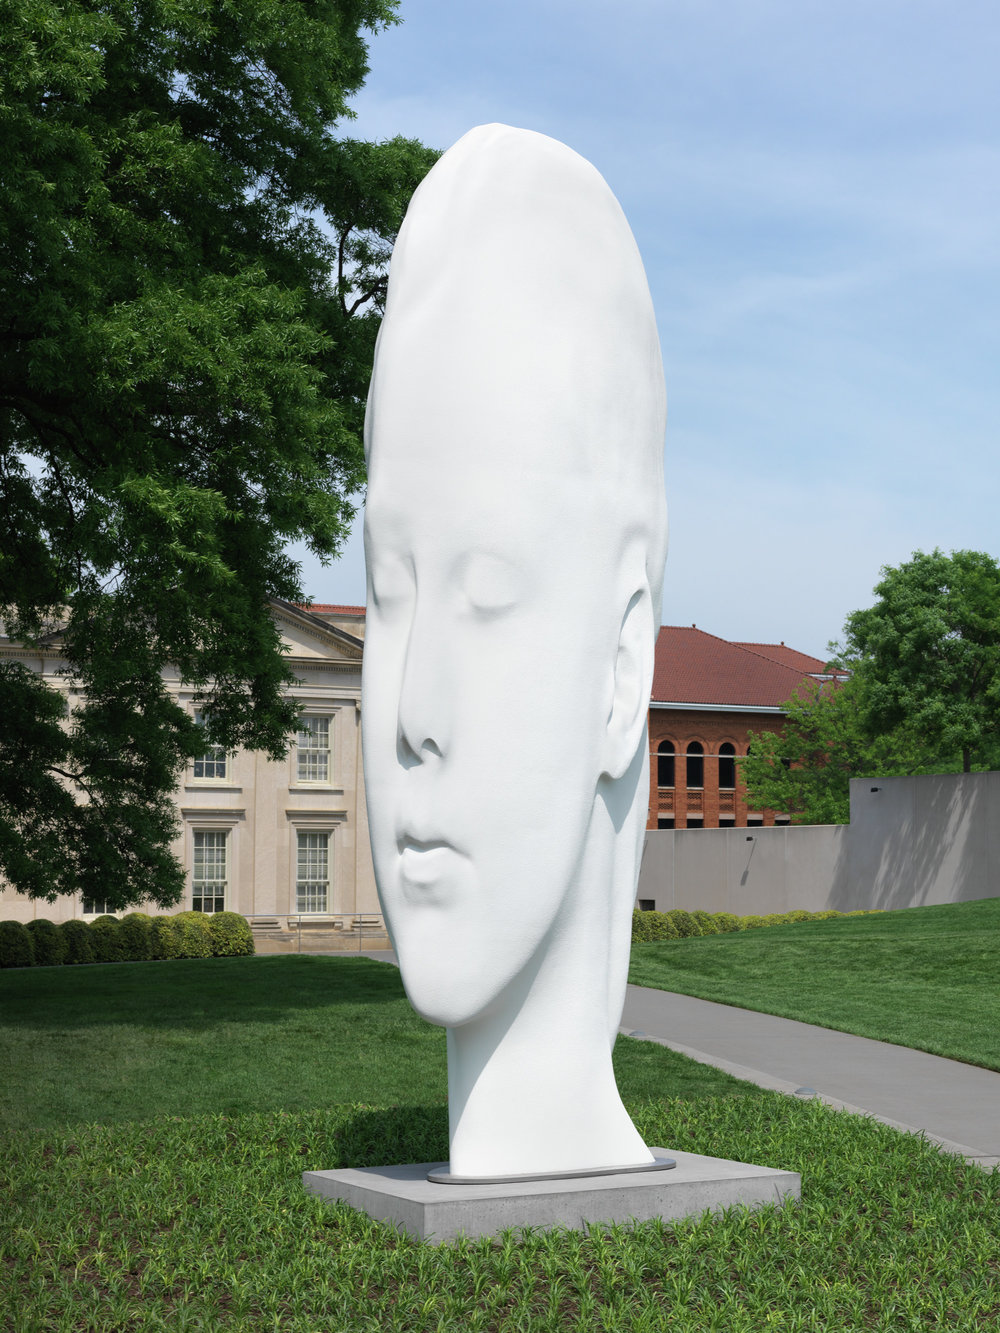 Jaume Plensa,   Chloe,  2016  Polyester resin, marble dust, stainless steel, Virginia Museum of Fine Arts, Adolph D. and Wilkins C. Williams Fund, © Jaume Plensa  Image courtesy of VMFA